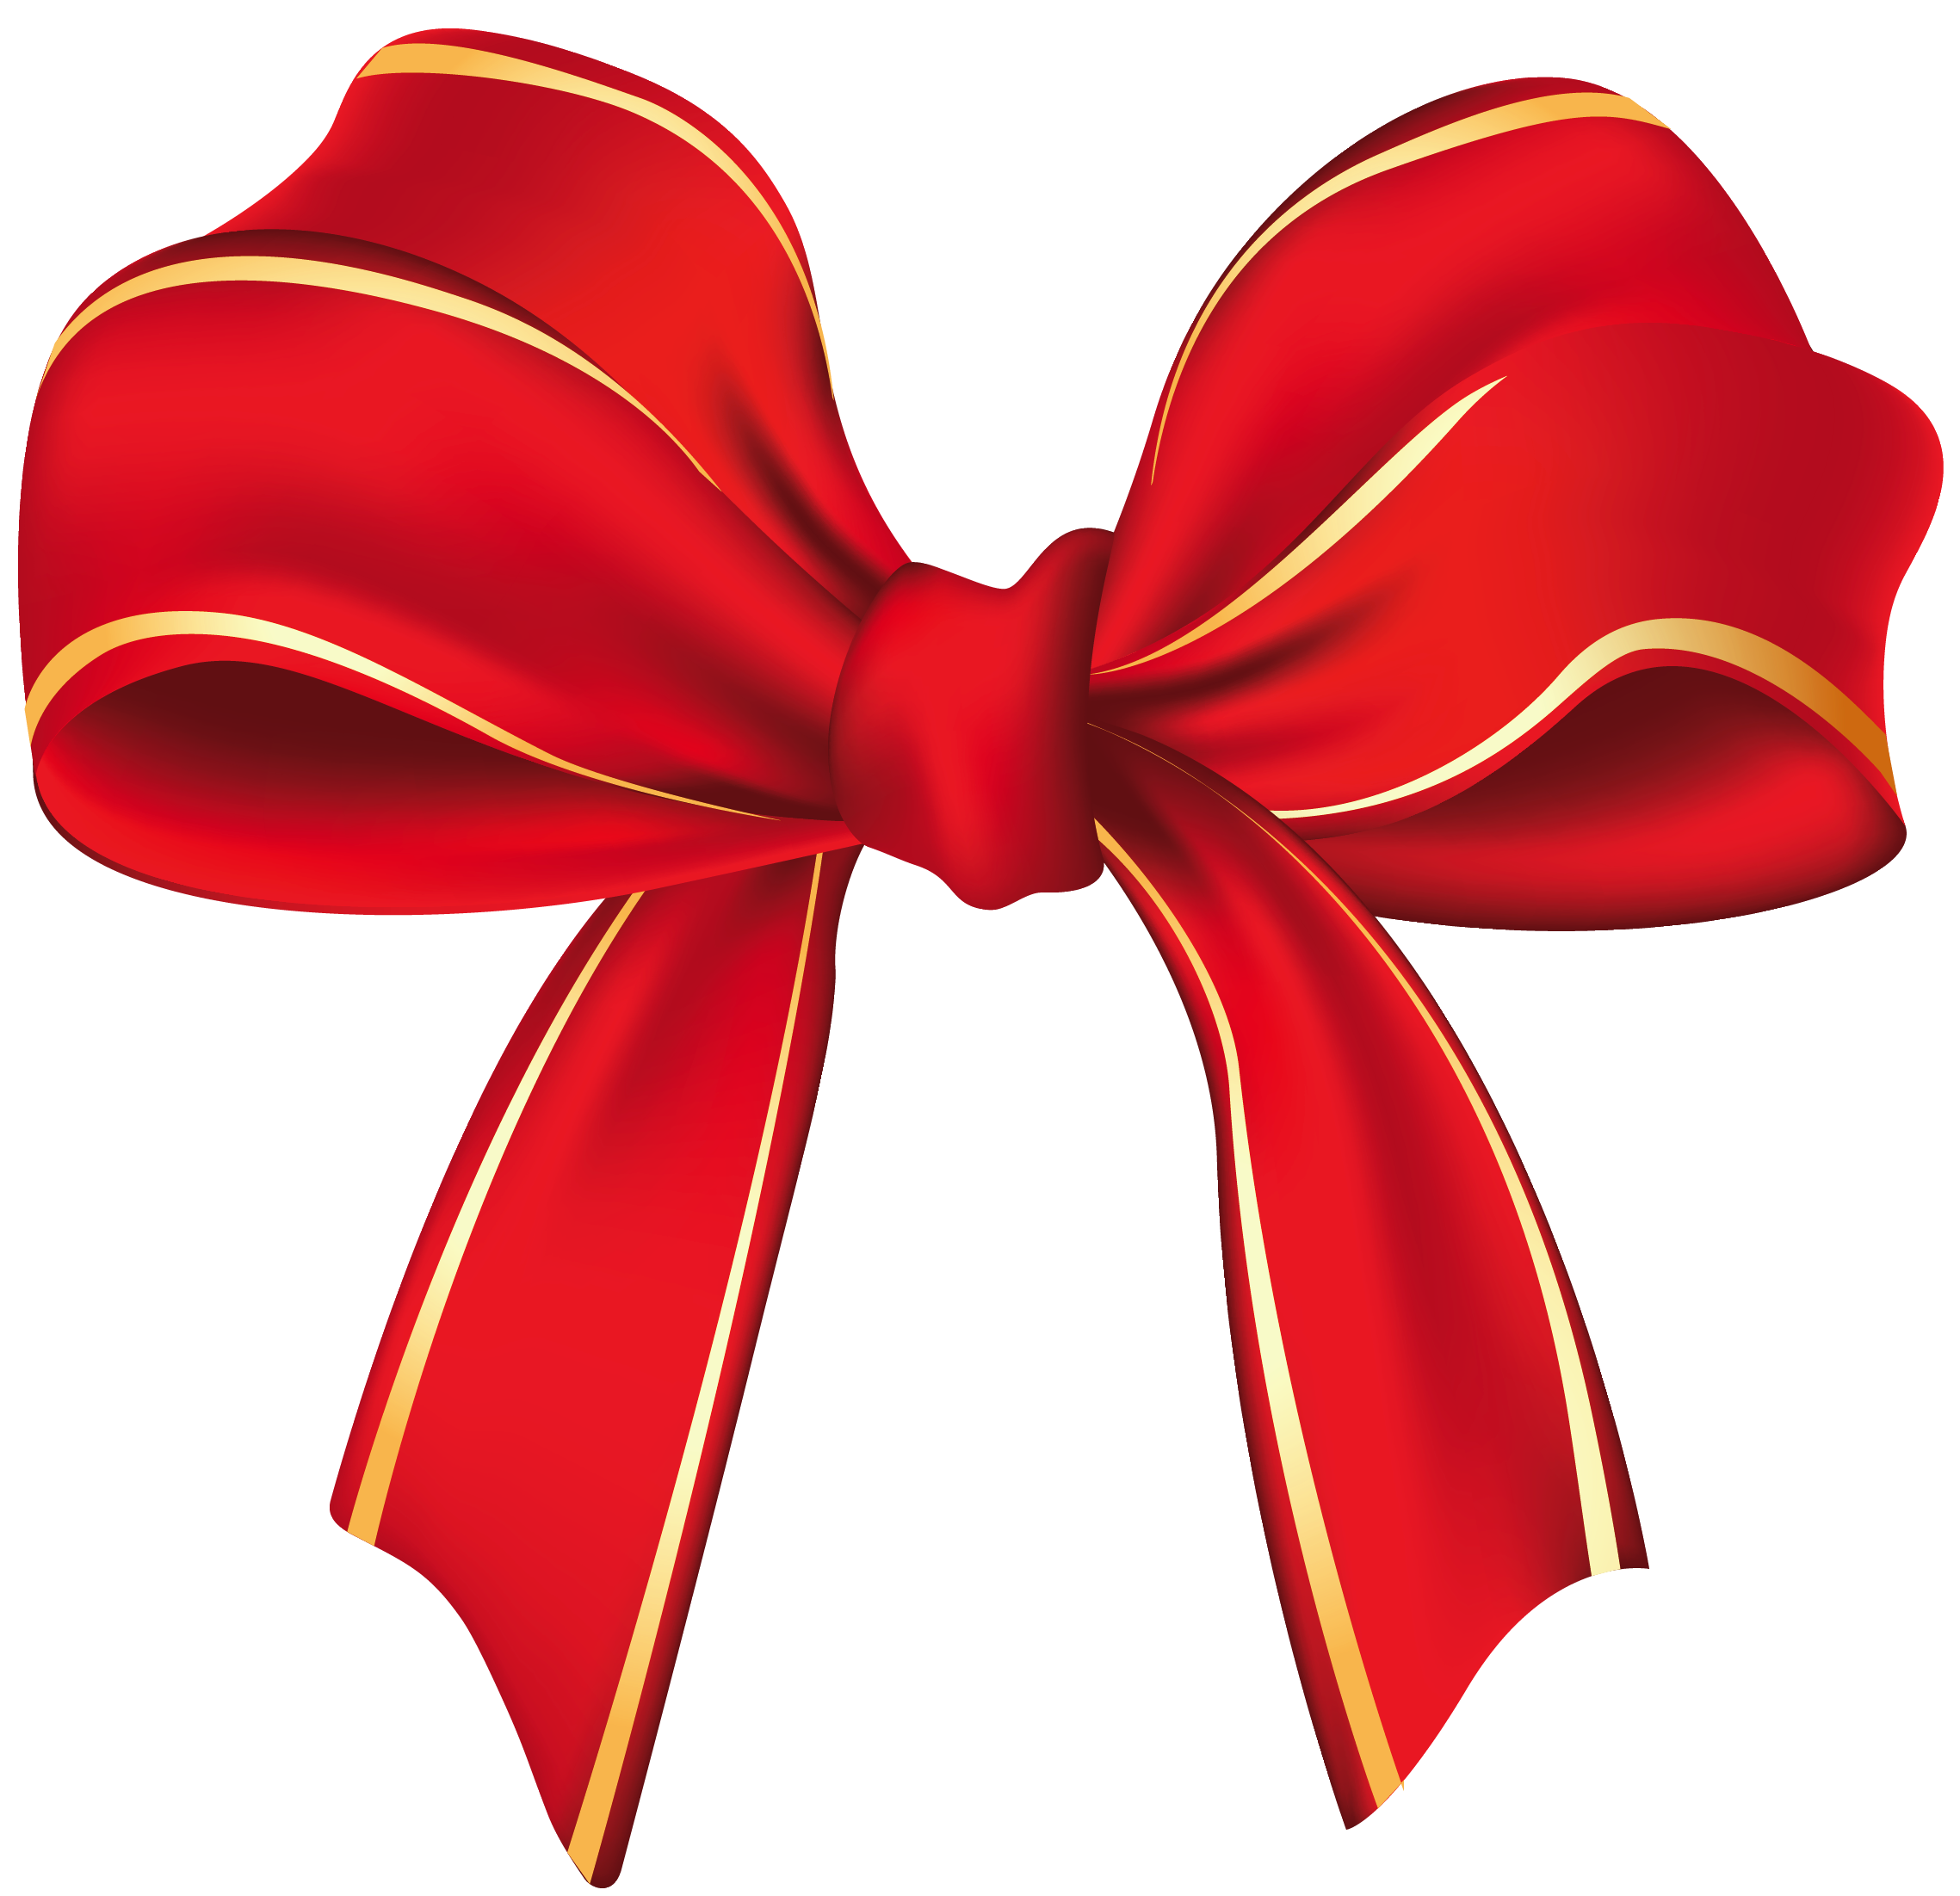 Christmas bow image clipart banner royalty free Free Christmas Bow Cliparts, Download Free Clip Art, Free Clip Art ... banner royalty free